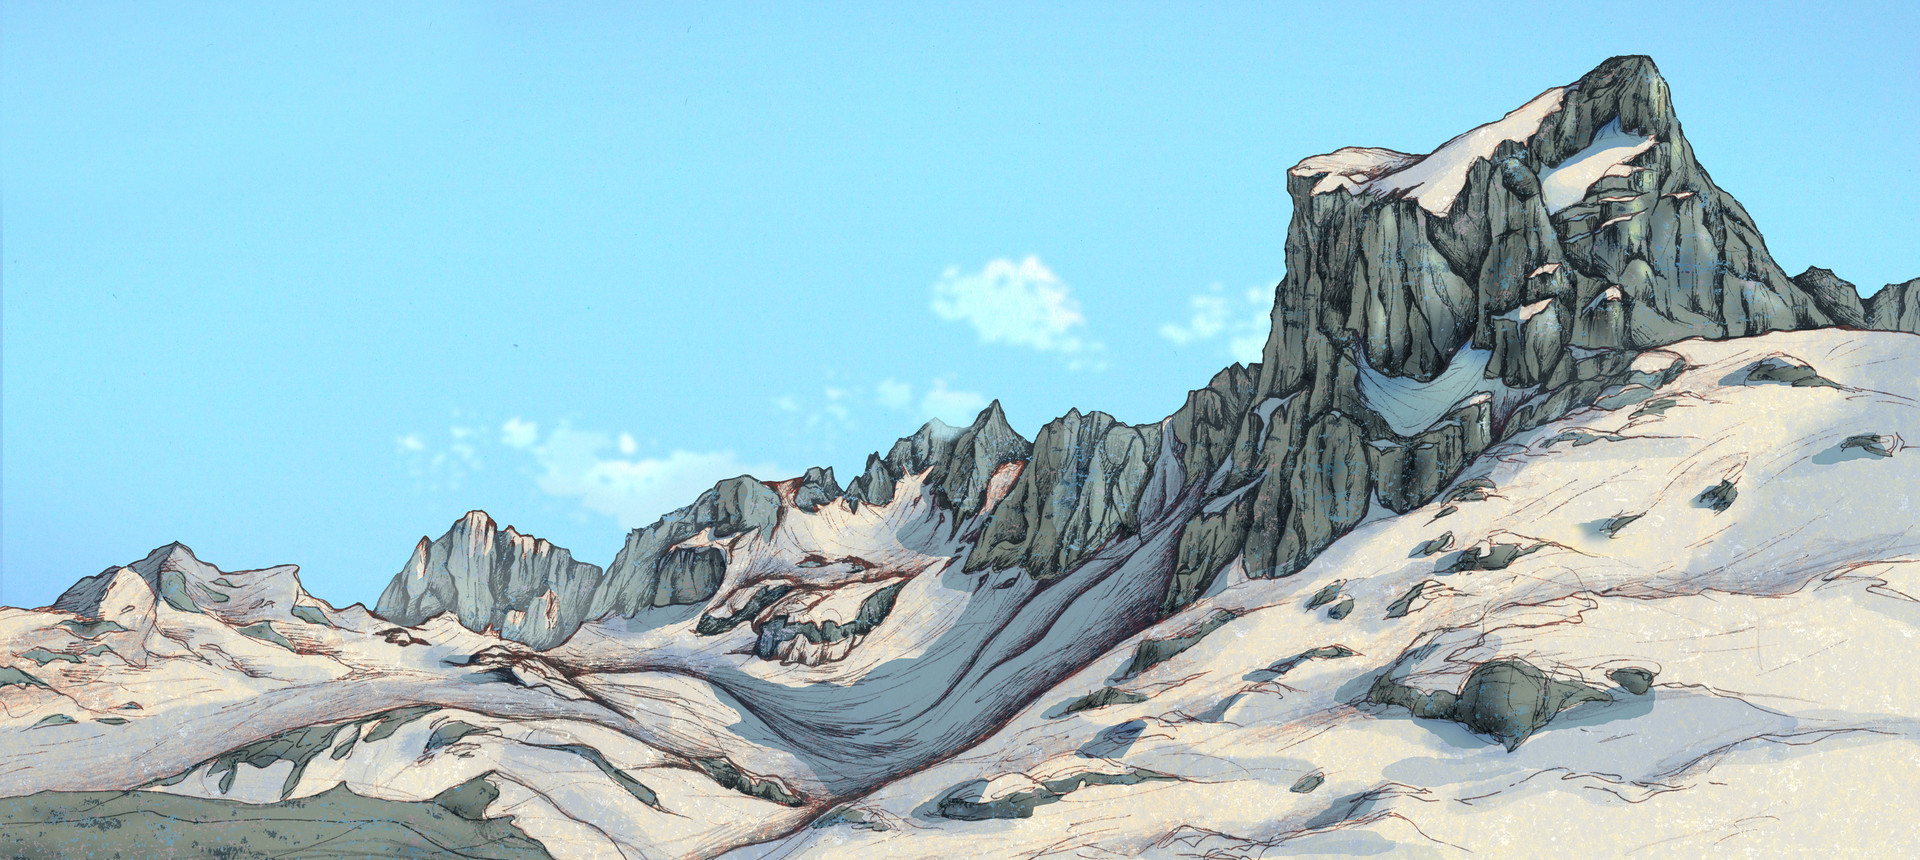 Autogiro illustration studio snow mountains